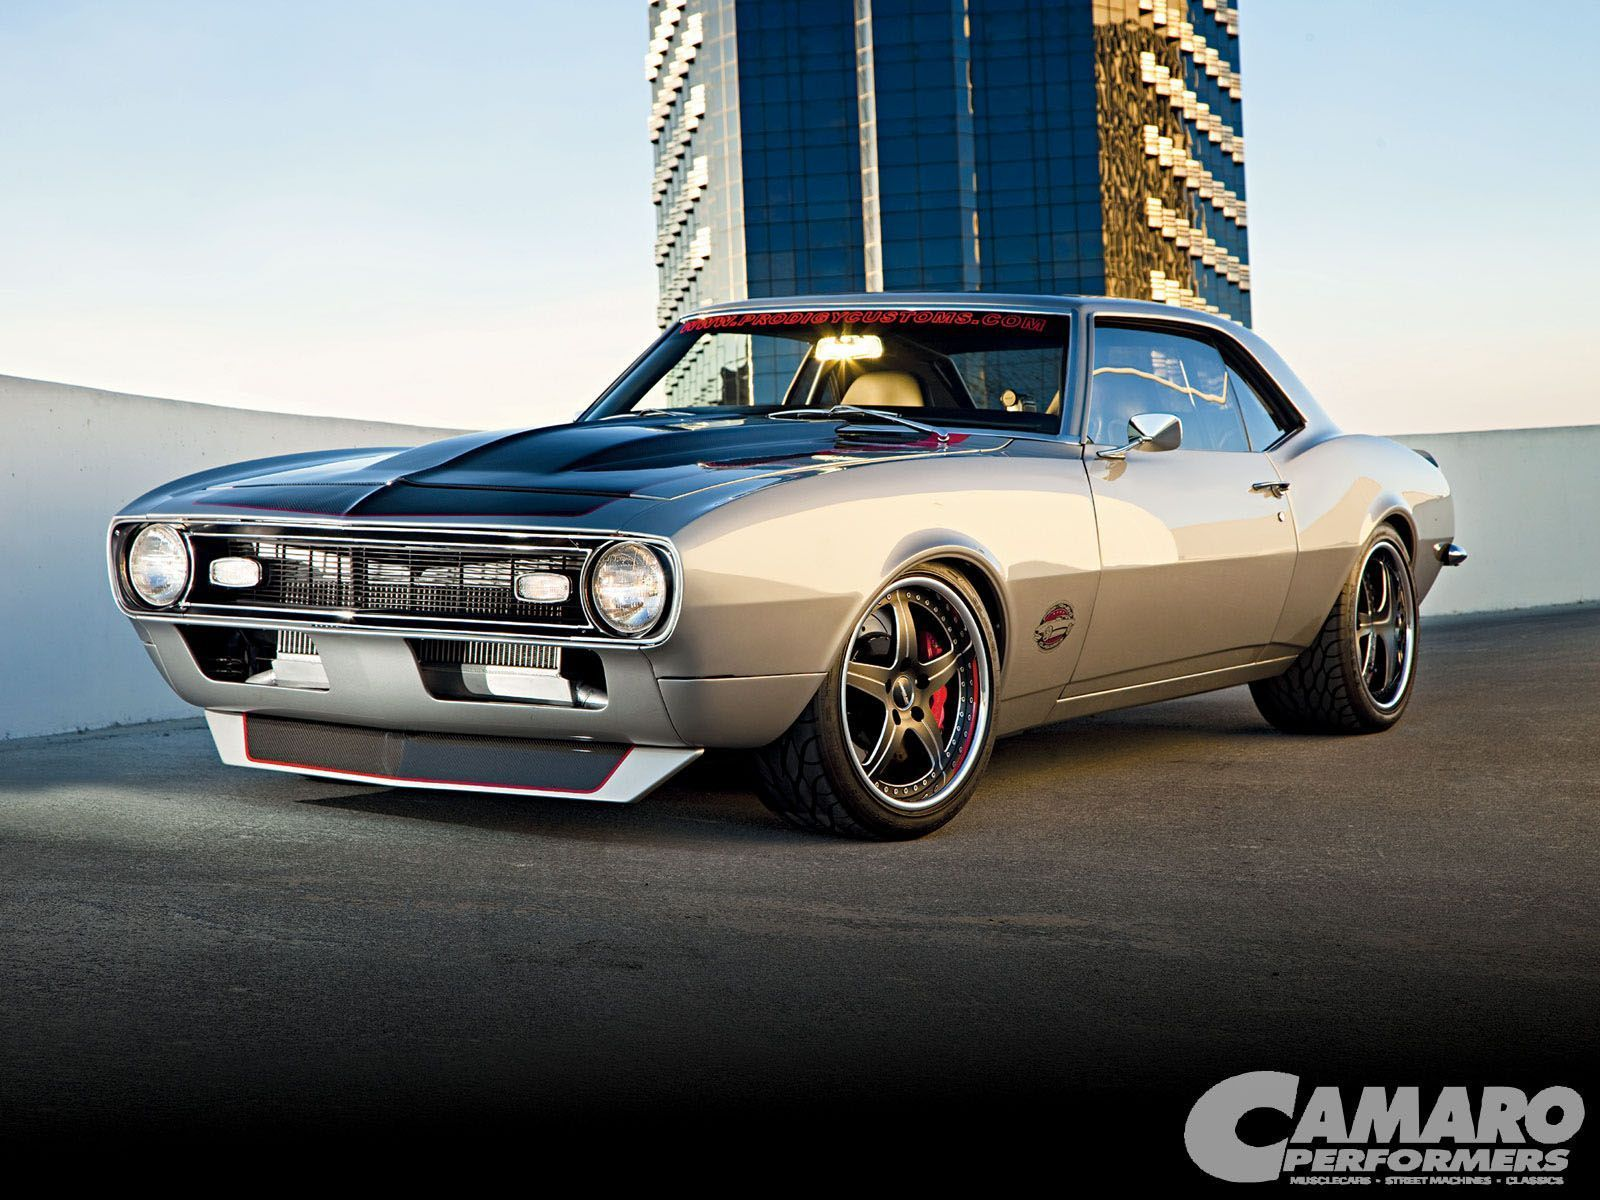 1968 Chevrolet Camaro | Larry Callahan's 1968 Twin Turbo